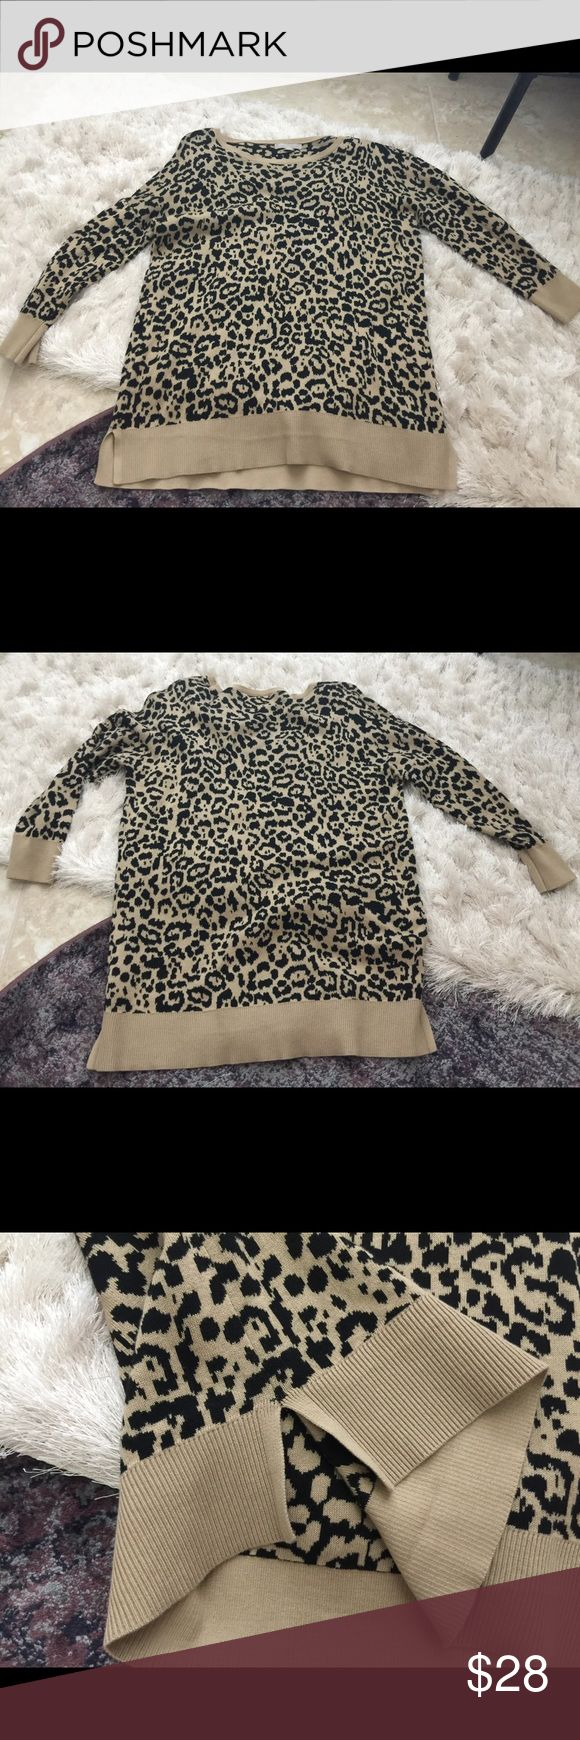 Banana Republic leopard sweater NWOT. Lovely leopard sweater. Size large but could fit a medium (wear it as an oversized sweater). Cute mini slits on the bottom sides. From a smoke free home. Reasonable offers welcomed. Banana Republic Sweaters